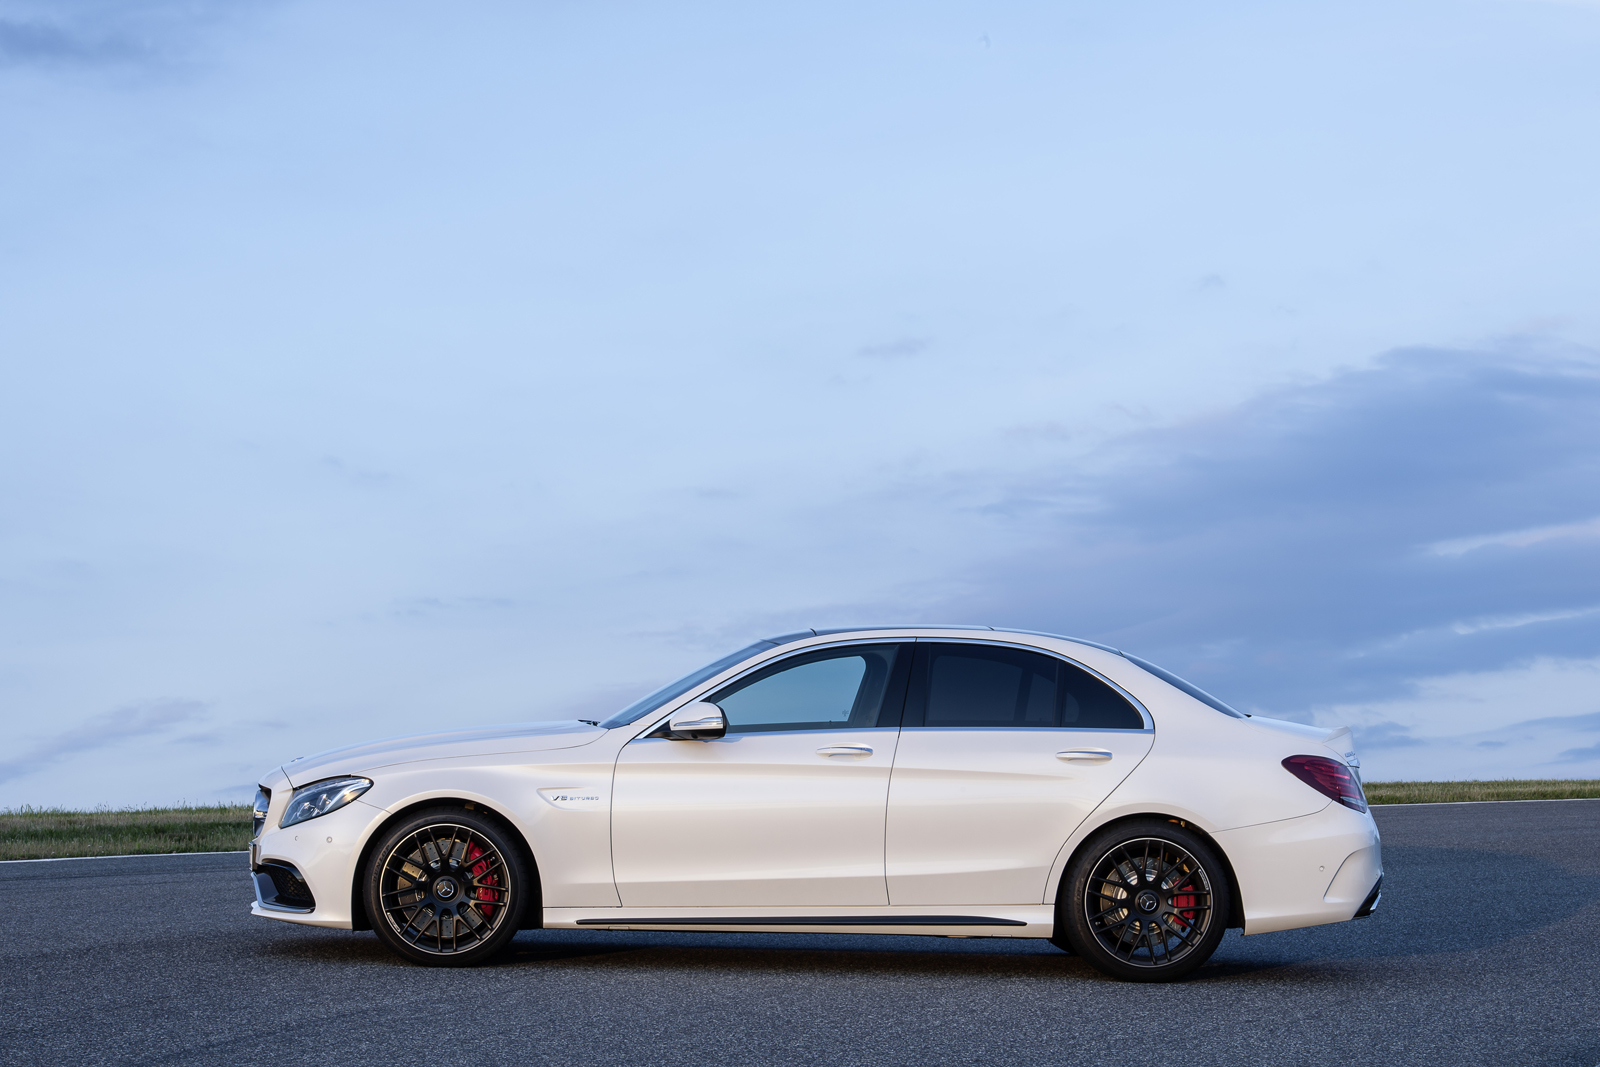 mercedes-amg-c63-saloon-paris-2014-mercedesblog-203